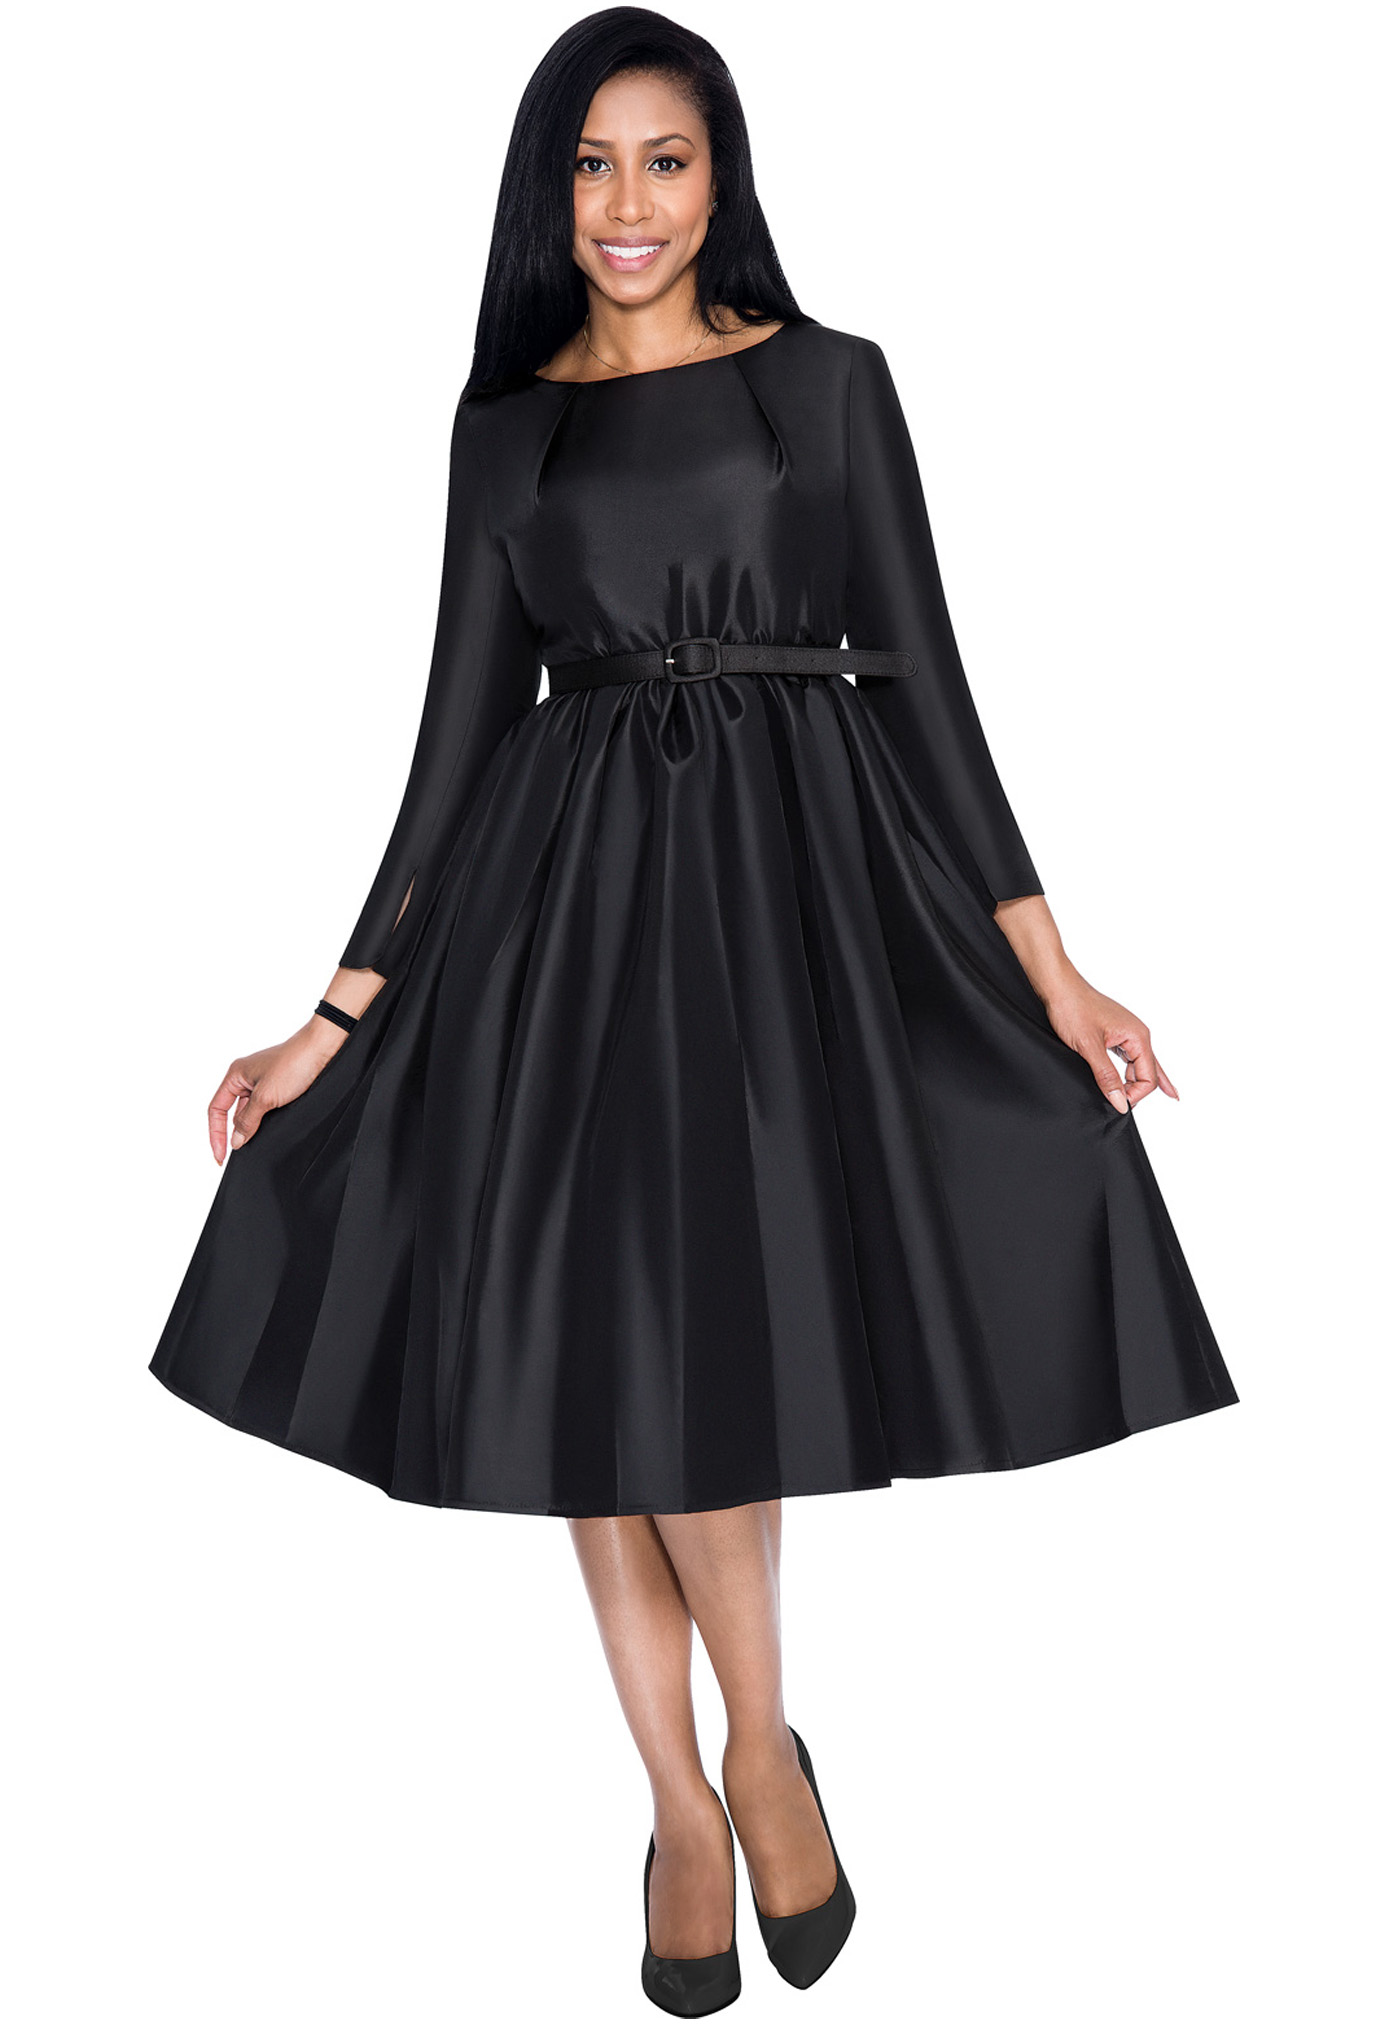 Dresses By Nubiano 5871-BLK-WCO